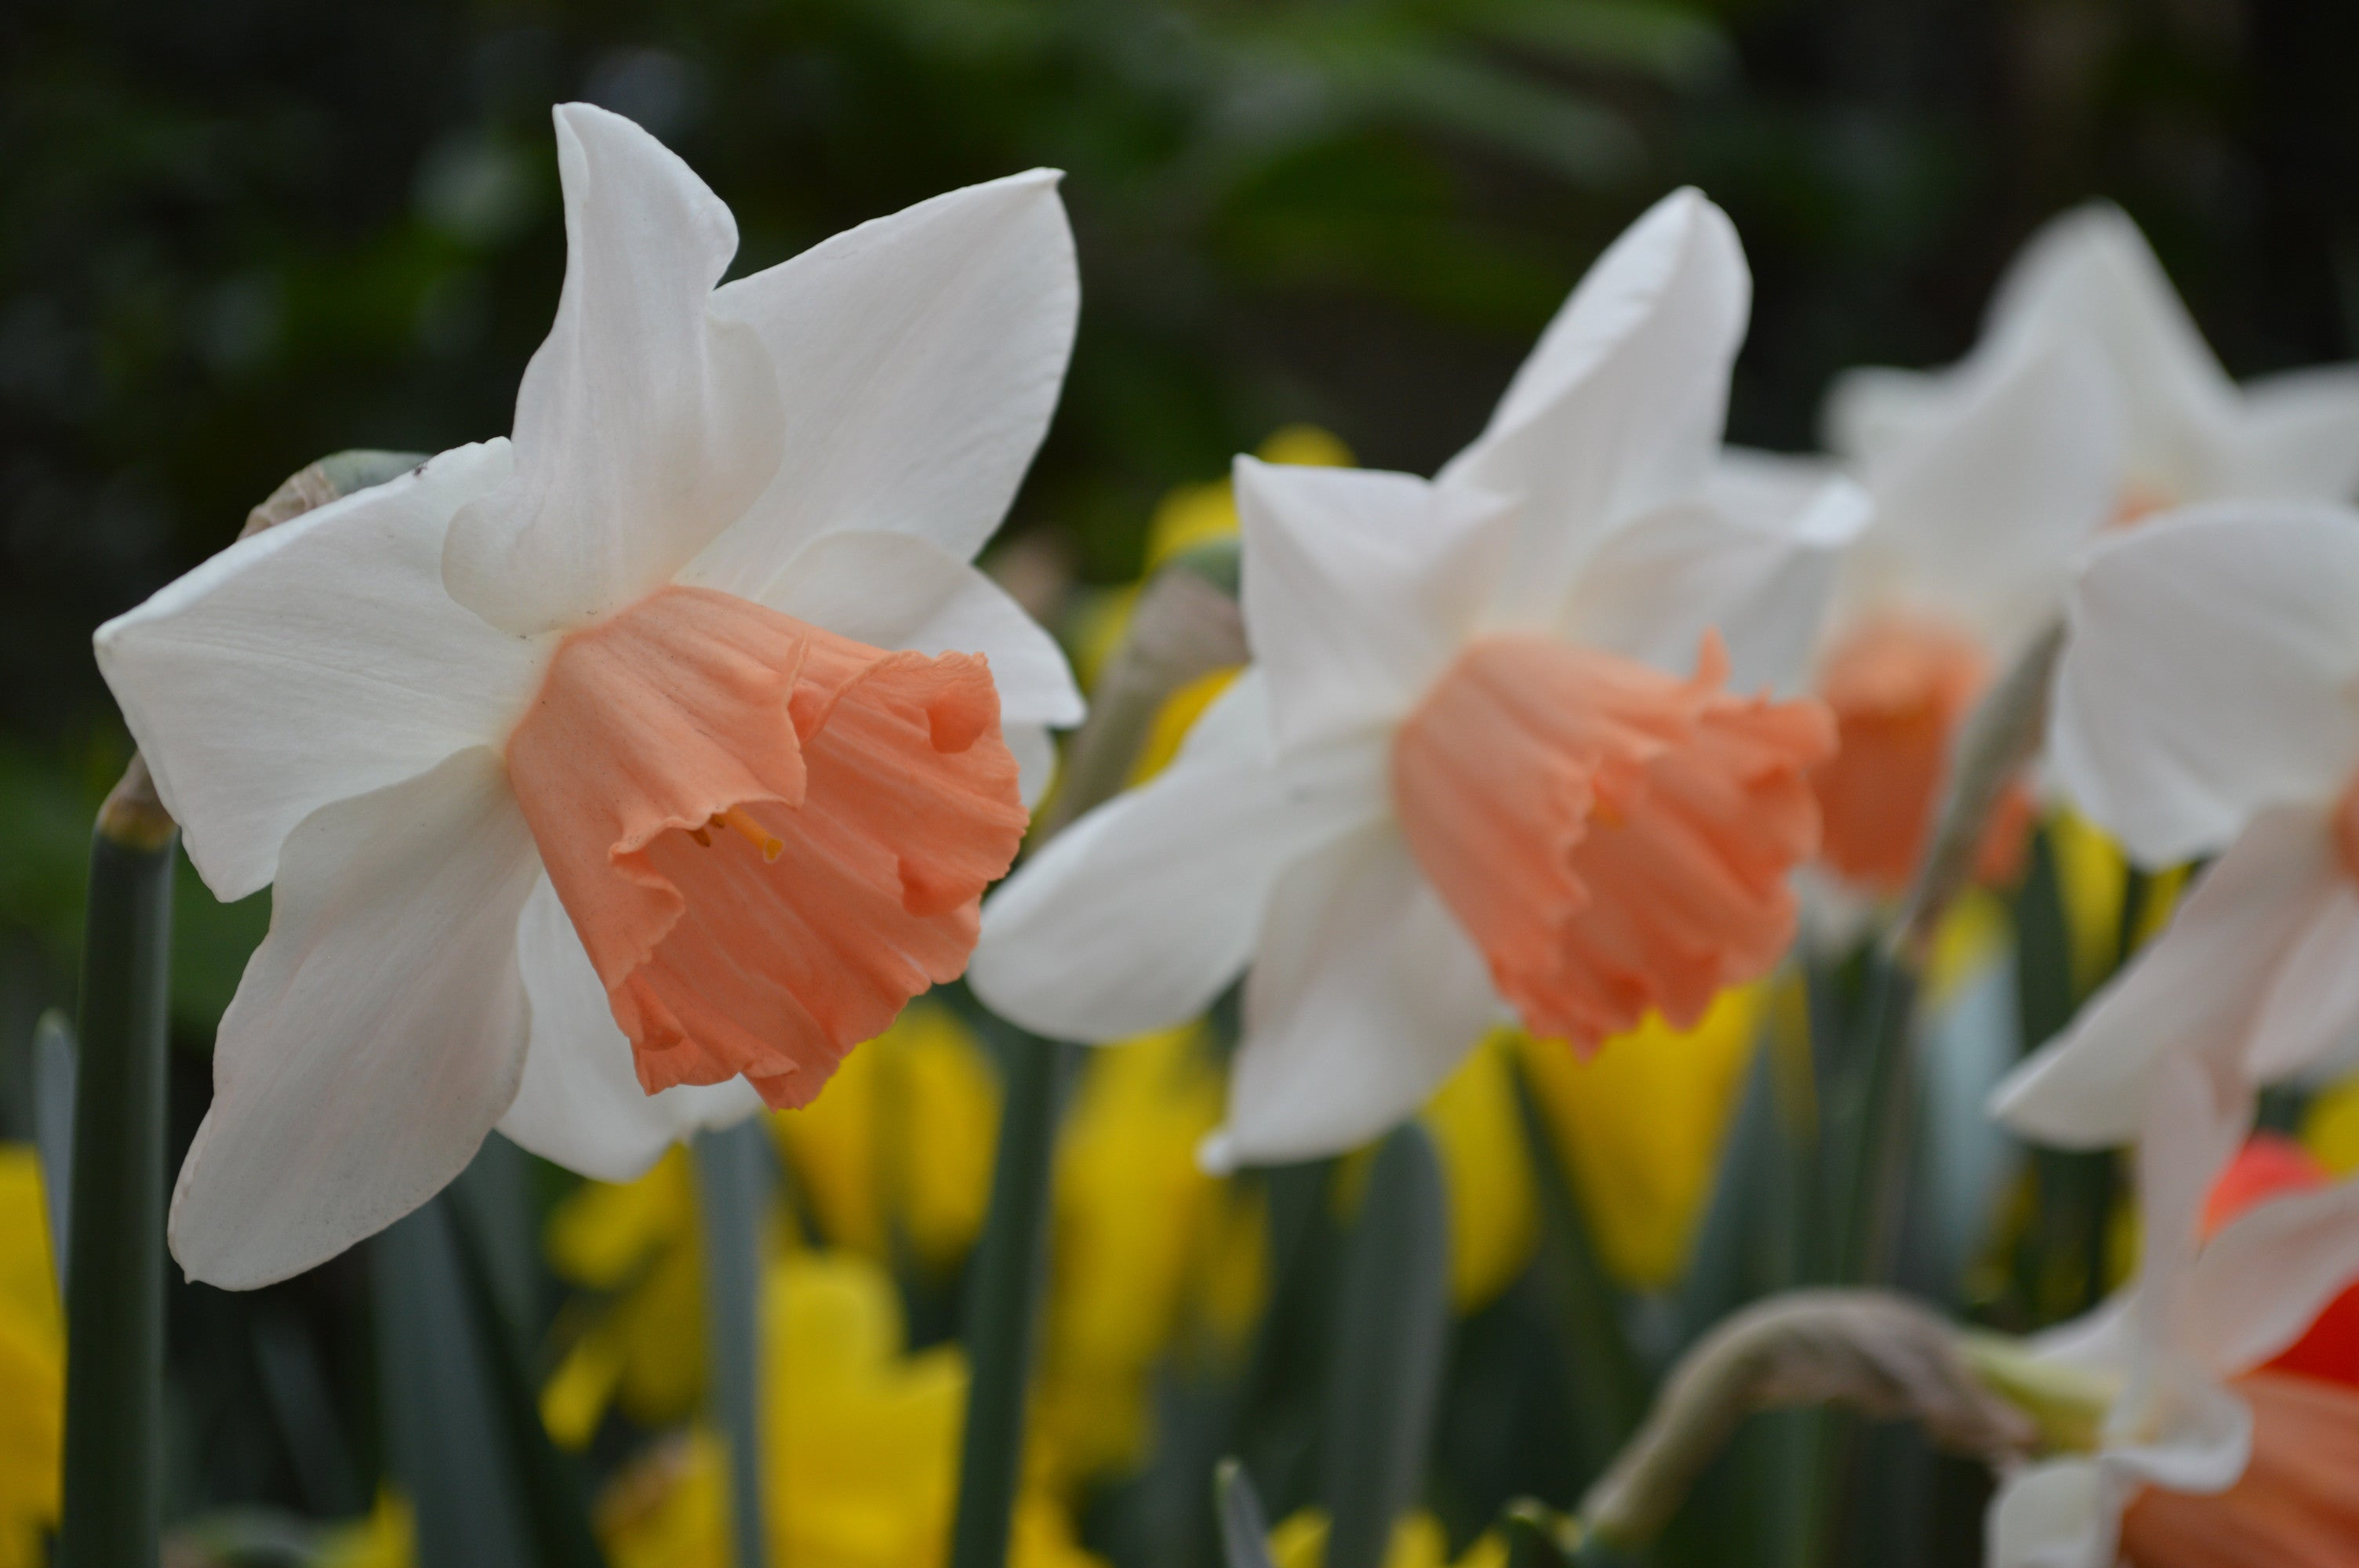 Daffodil accent buy daffodil bulbs dutchgrown daffodil accent apricot white spring flowers pre order mightylinksfo